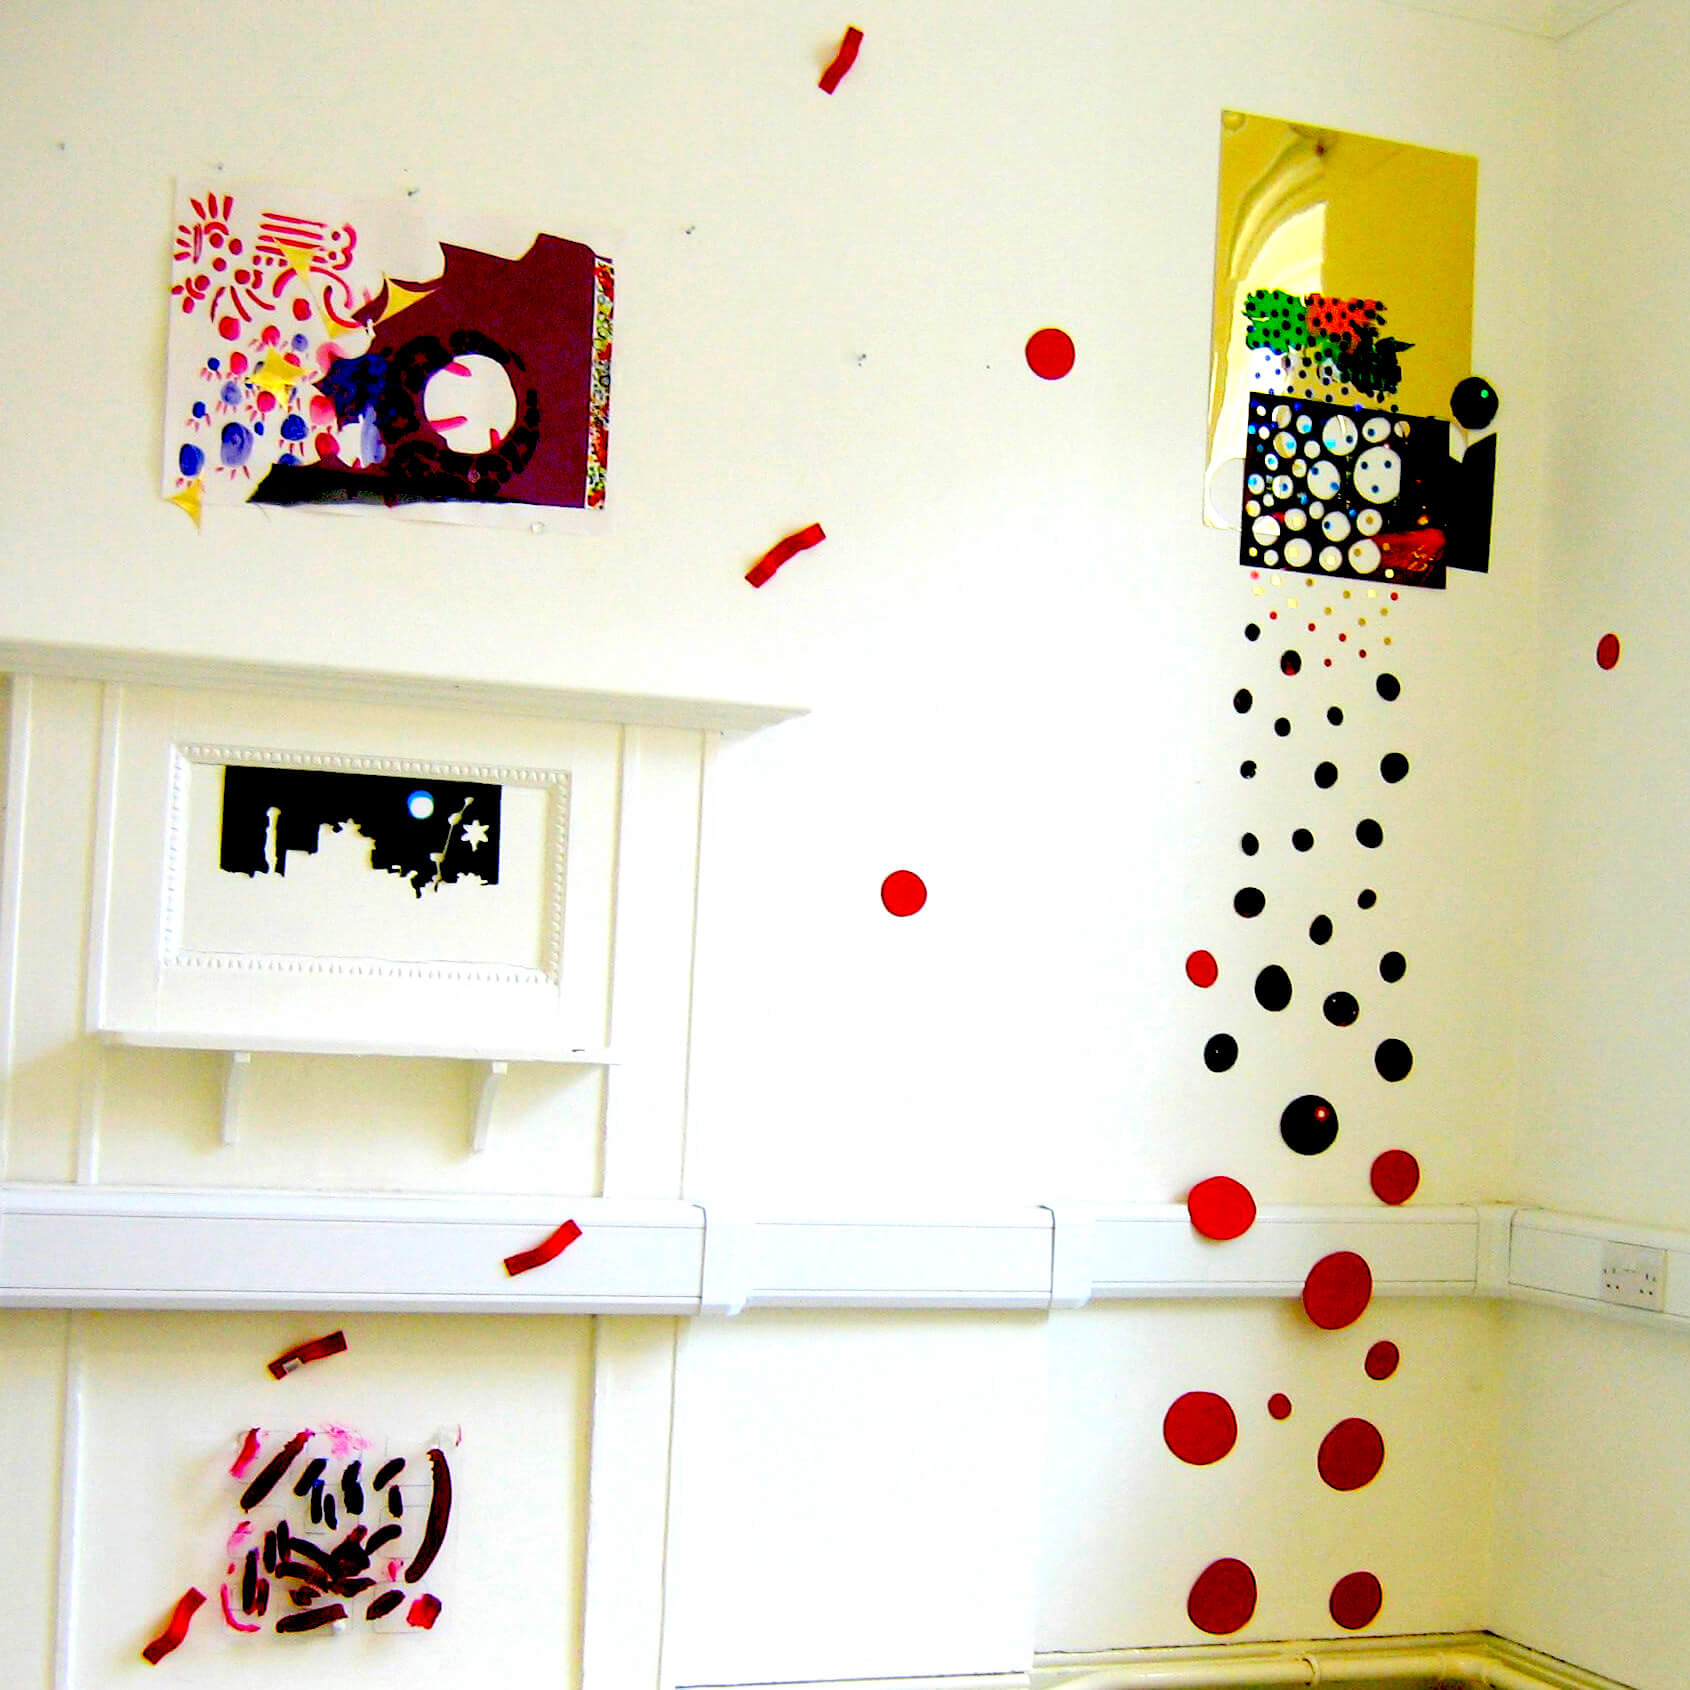 Zoomed In, 2005, Installation View, 2005, different types of paper, felt, acrylic paints and plastic circles